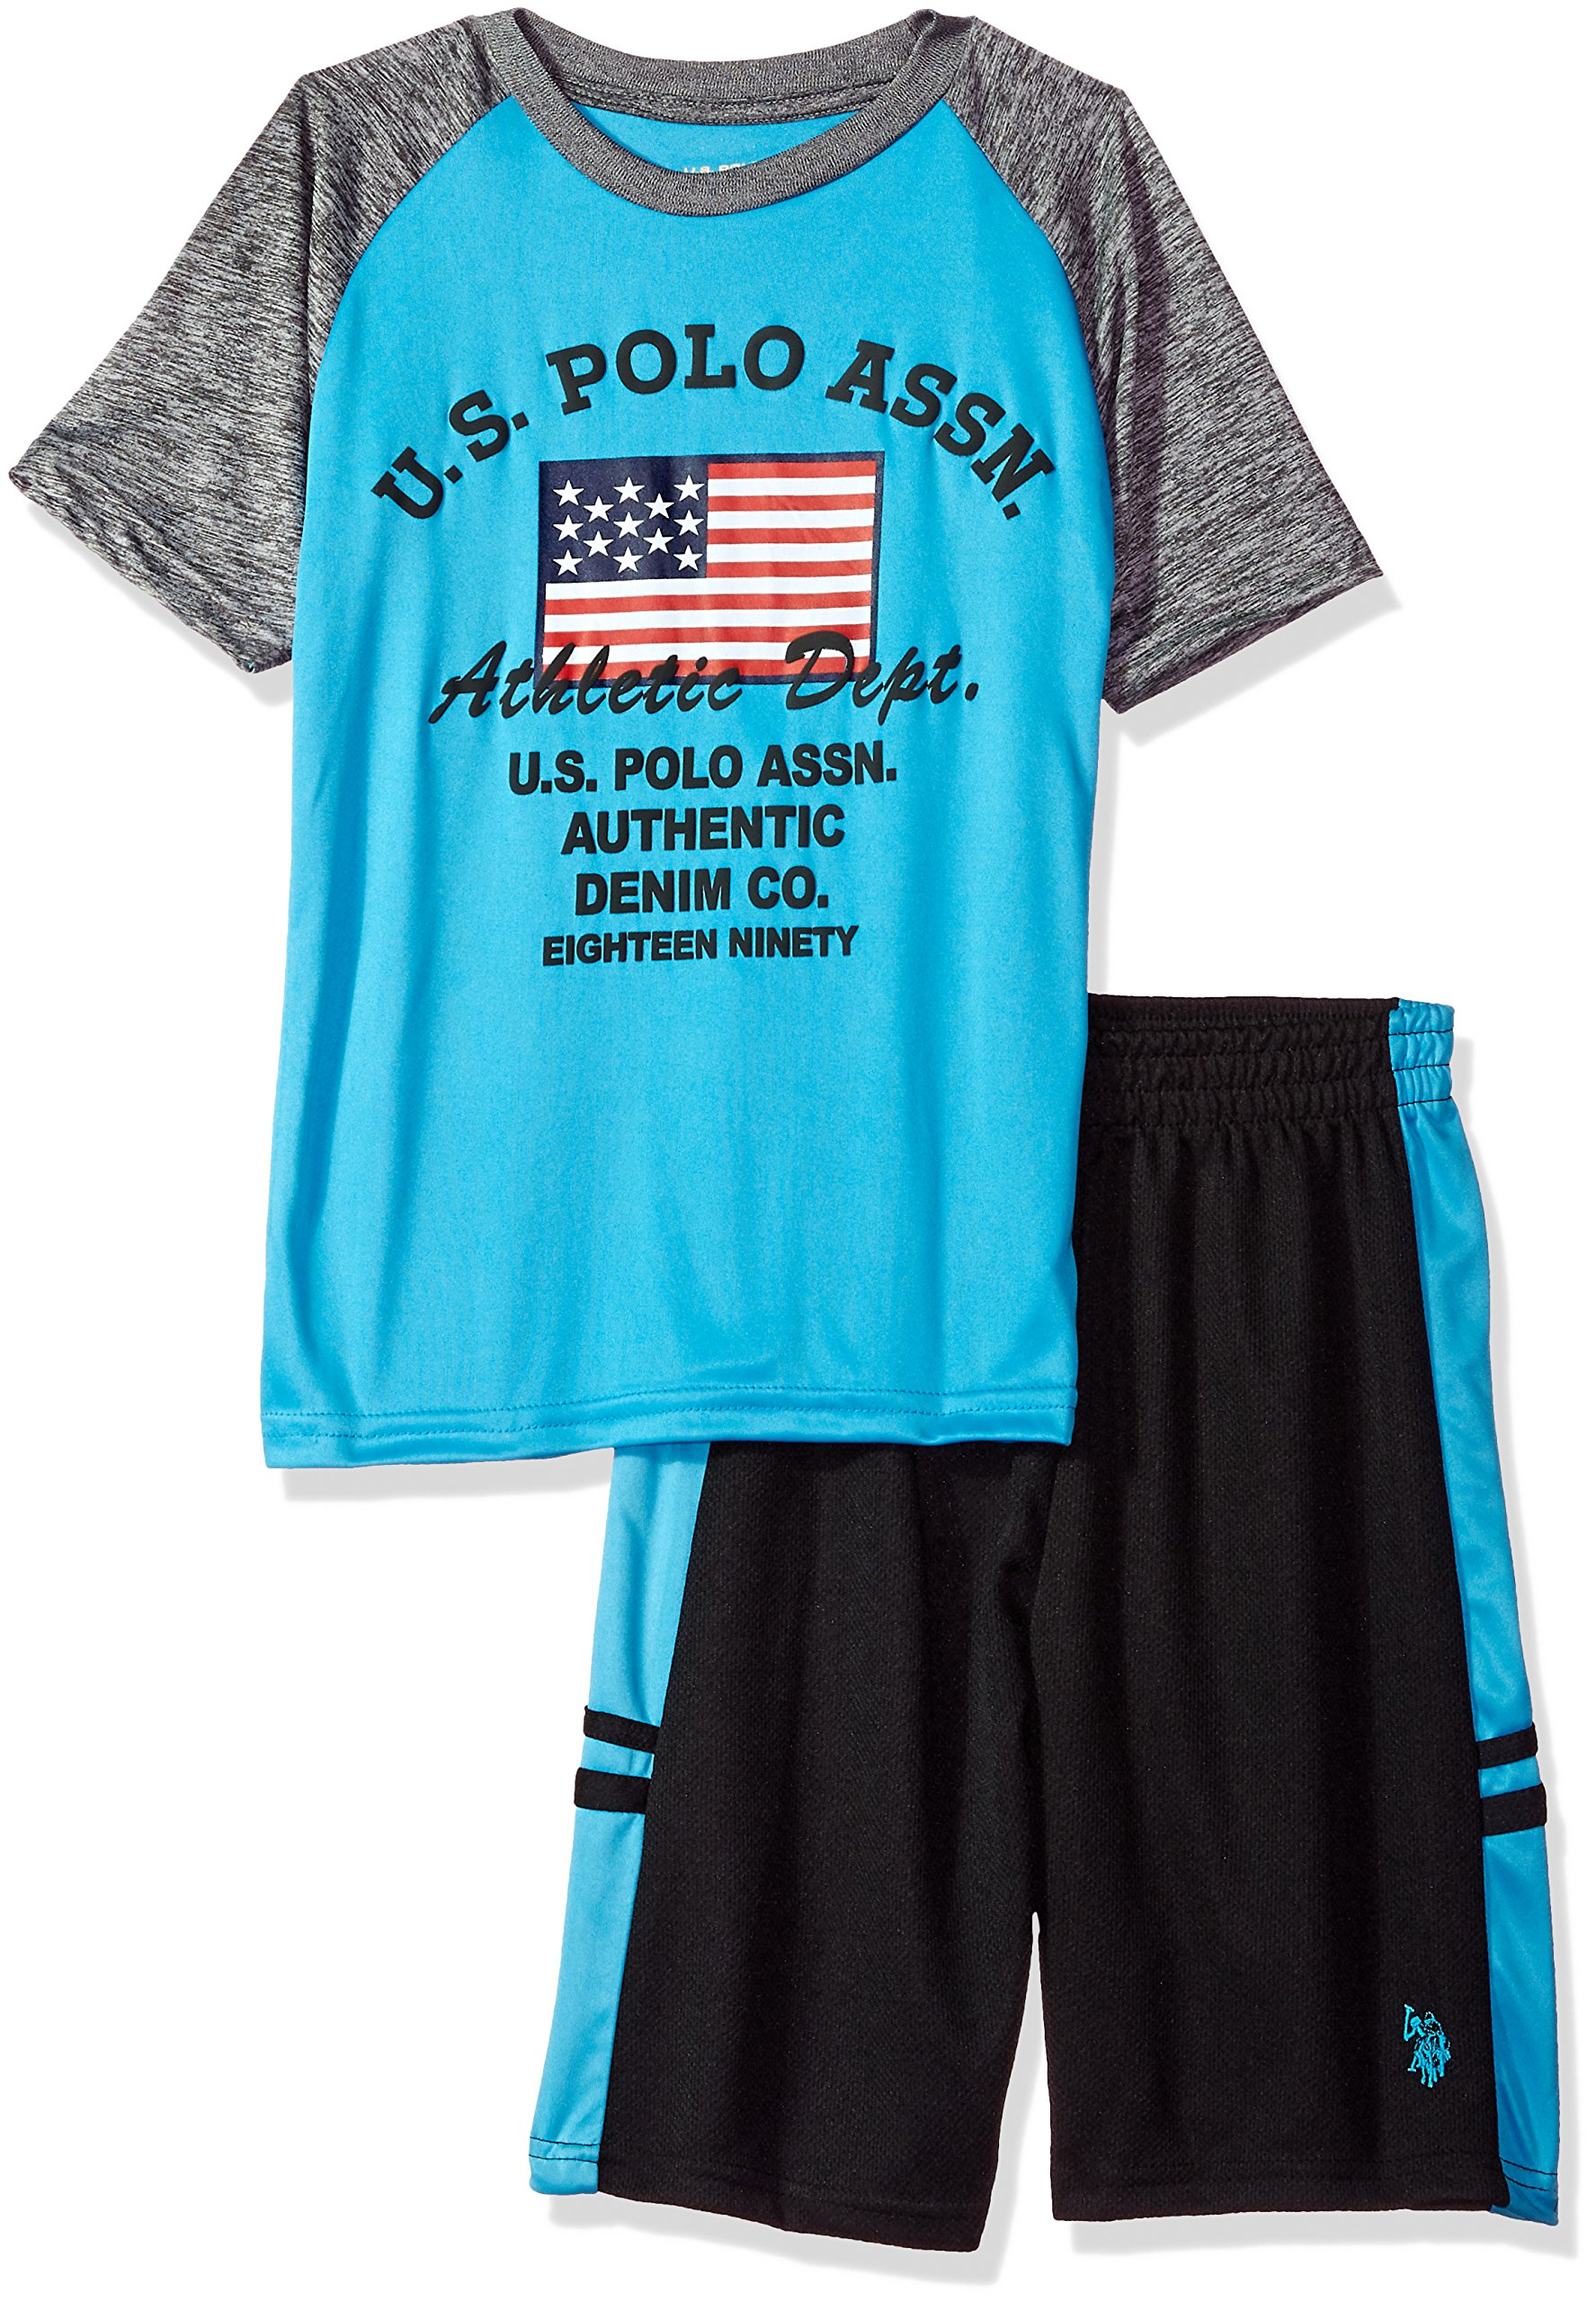 U.S. Polo Assn. Little Boys' T-Shirt, Tank and Mesh Short Set, Athletic Dept Taping Sewn Top Turquoise, 5/6